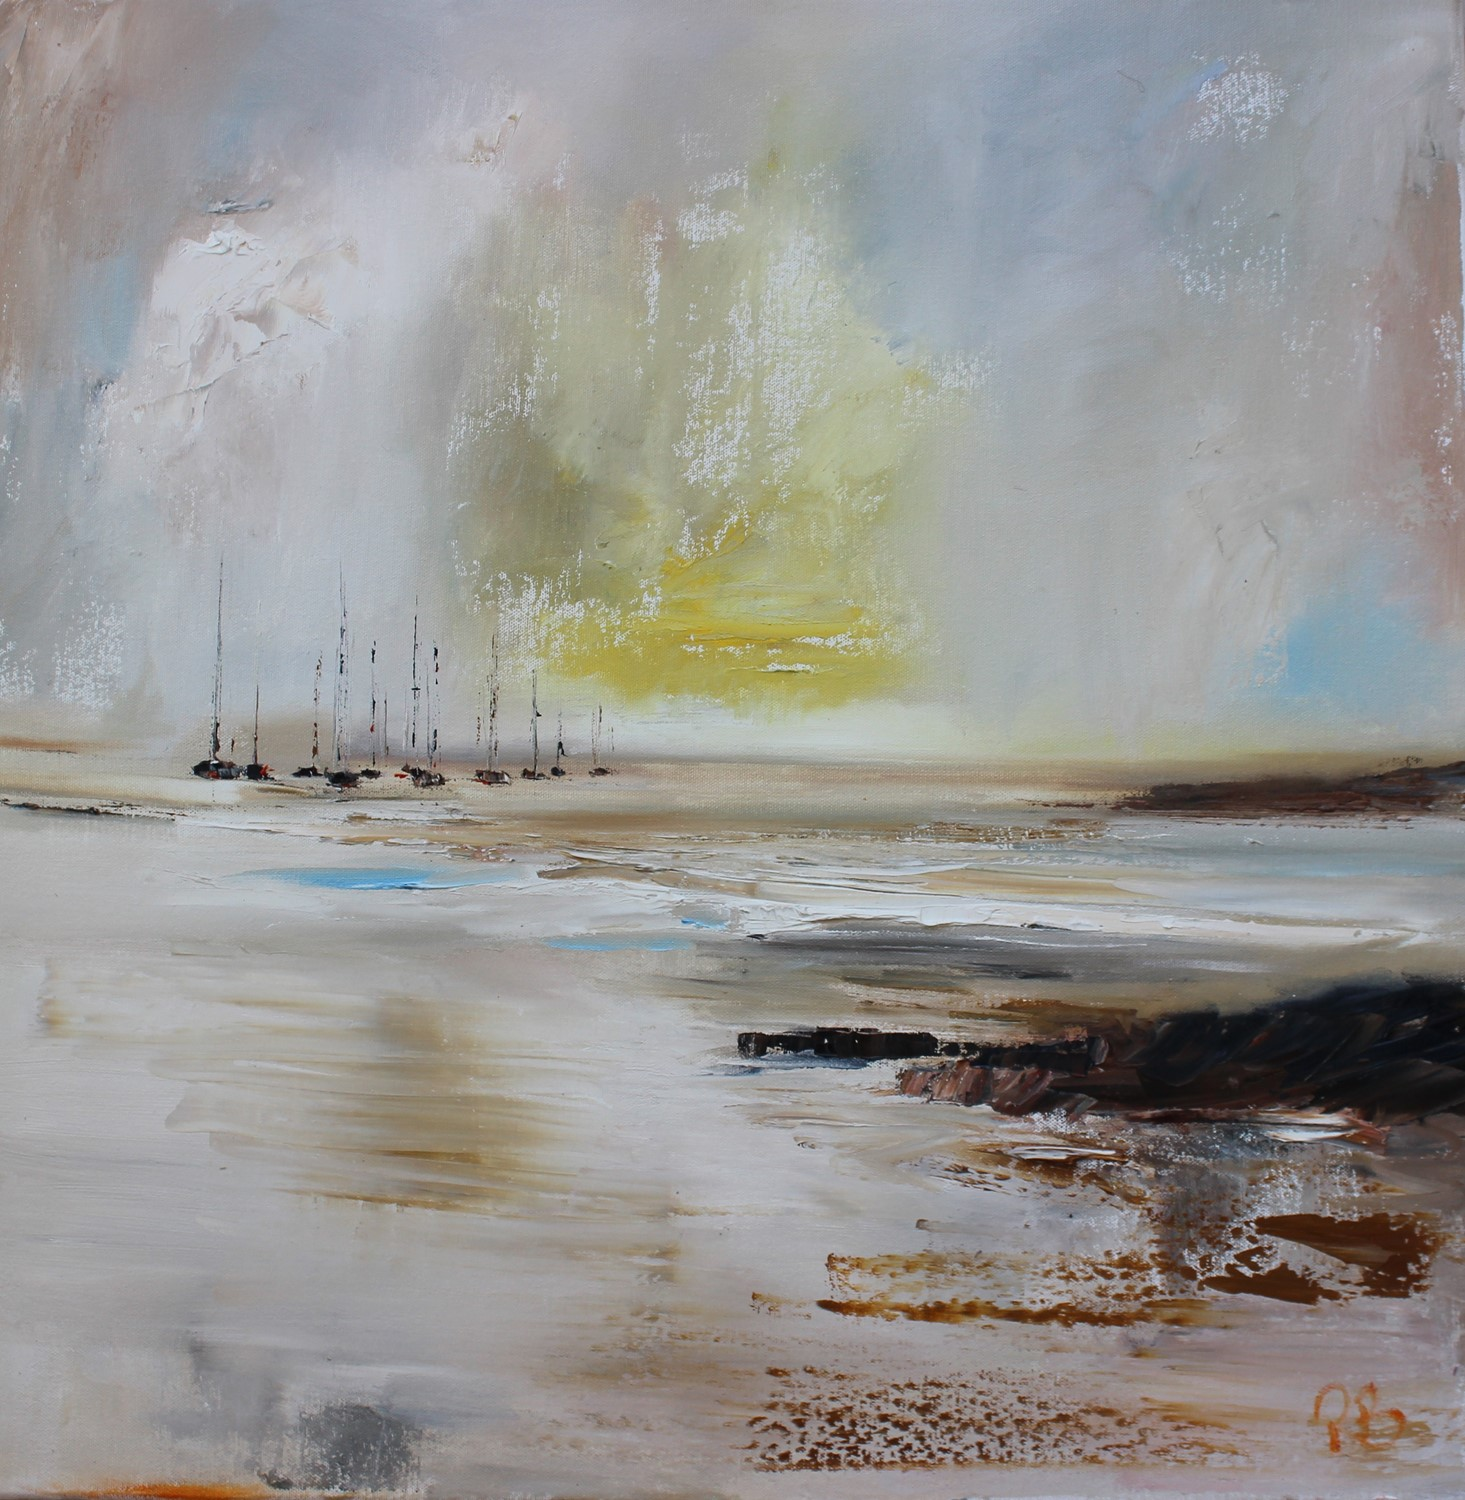 'Sailing on Silver Seas ' by artist Rosanne Barr